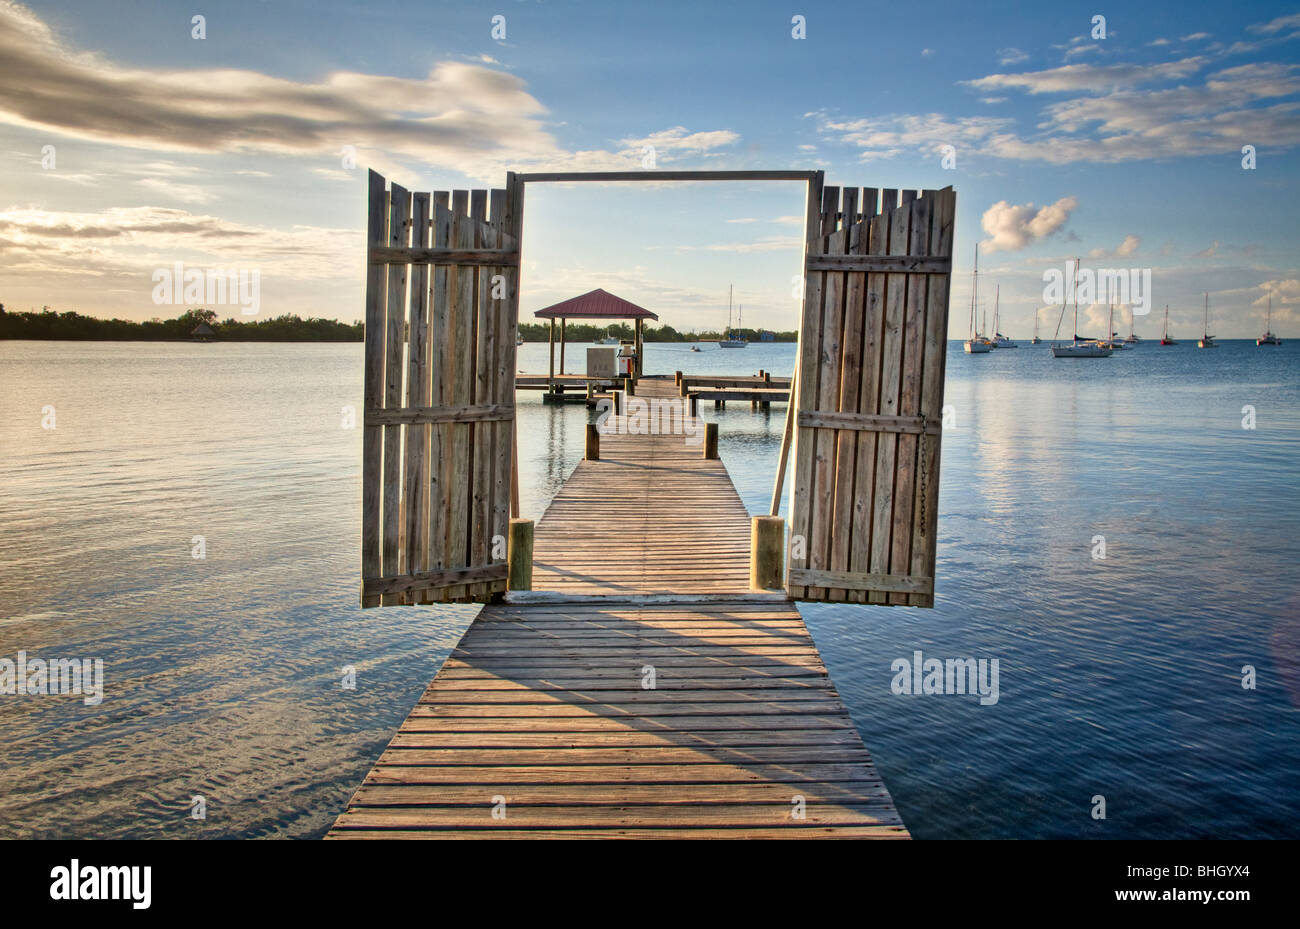 main dock at sunrise in Placencia, Belize - Stock Image